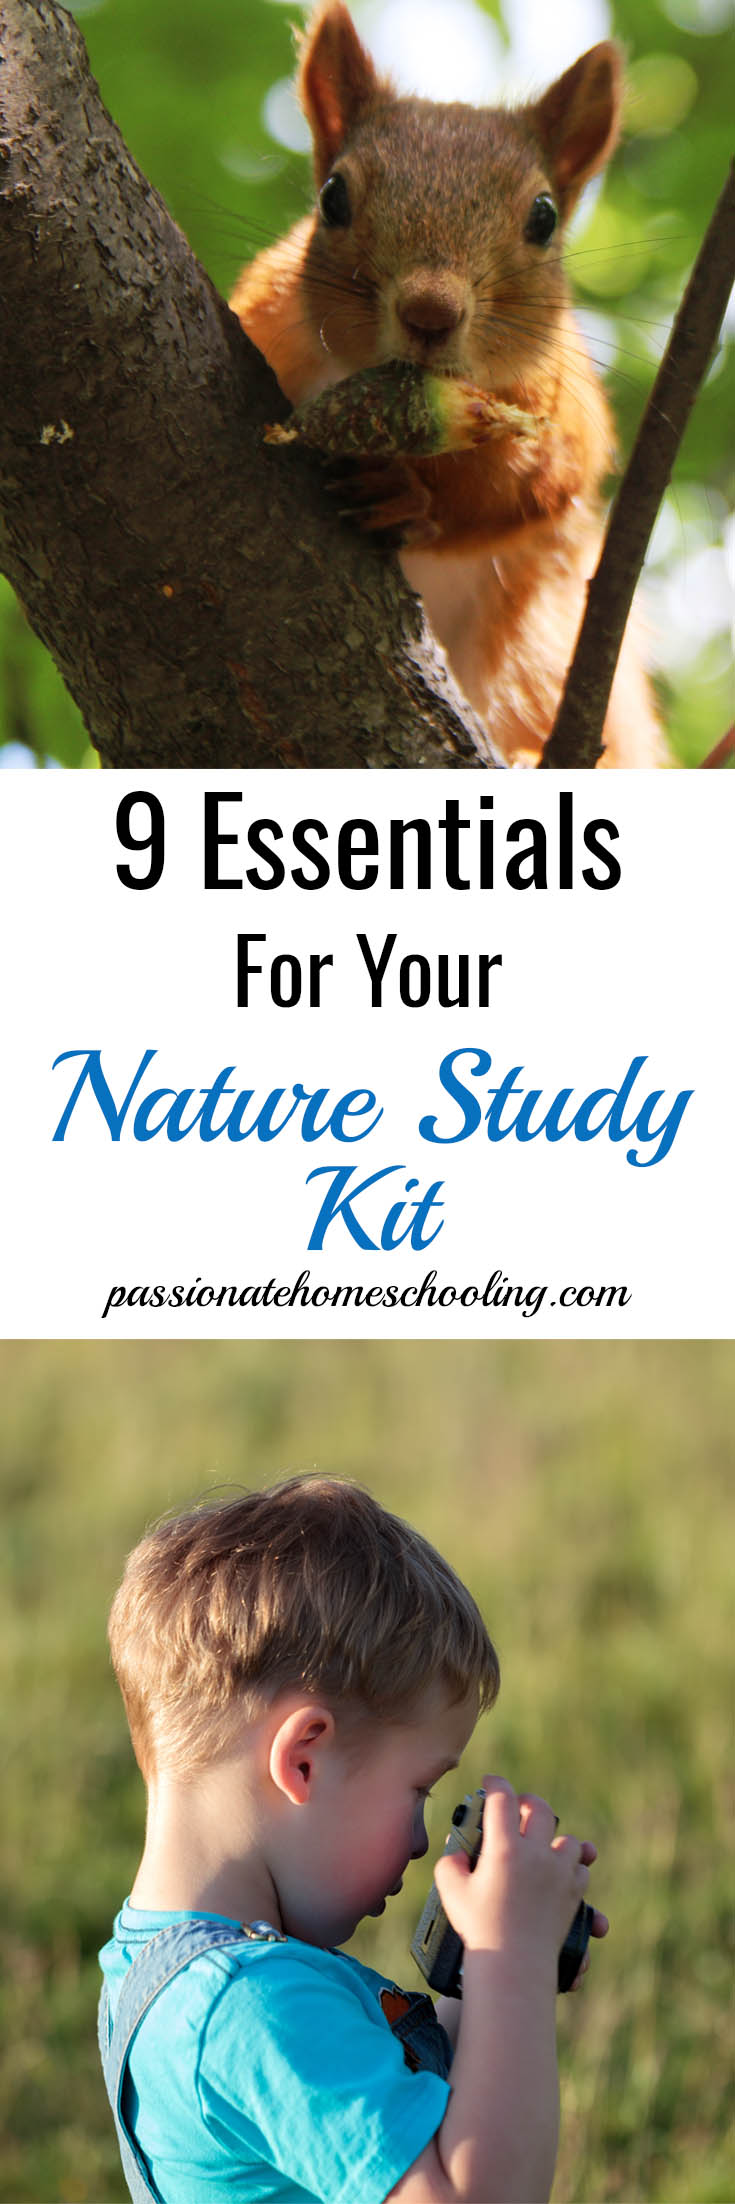 9 Essentials For Your Nature Study Kit. Have fun with your nature study by keeping everything on hand and ready to go. www.passionatehomeschooling.com